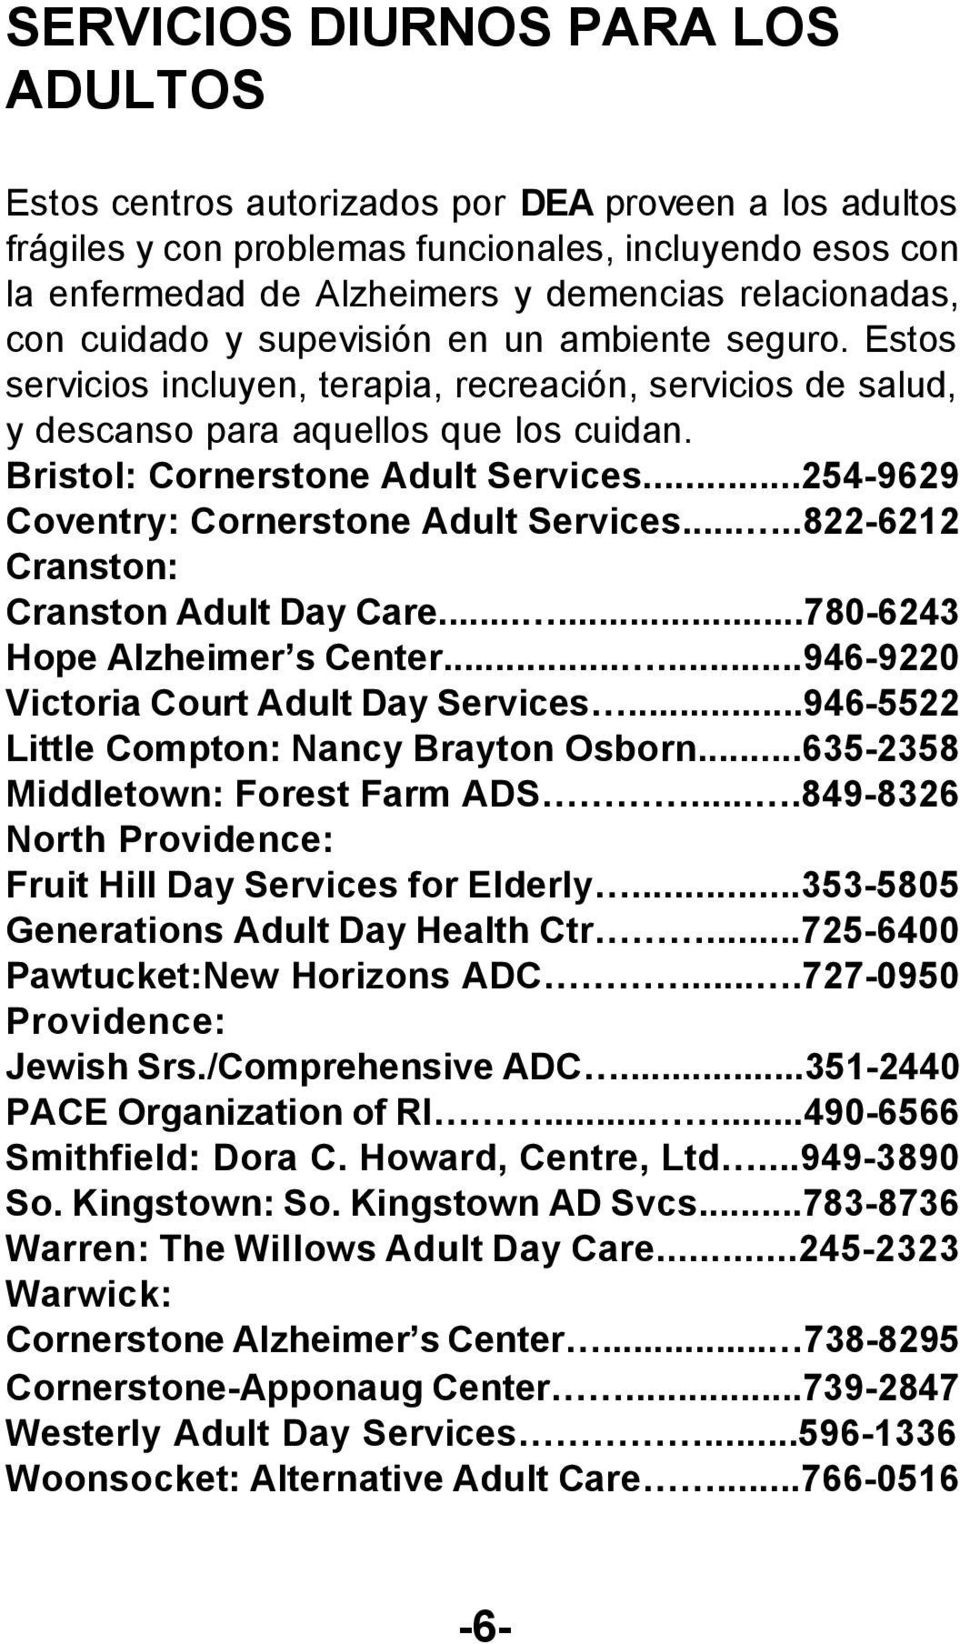 Bristol: Cornerstone Adult Services...254-9629 Coventry: Cornerstone Adult Services.....822-6212 Cranston: Cranston Adult Day Care......780-6243 Hope Alzheimer s Center.